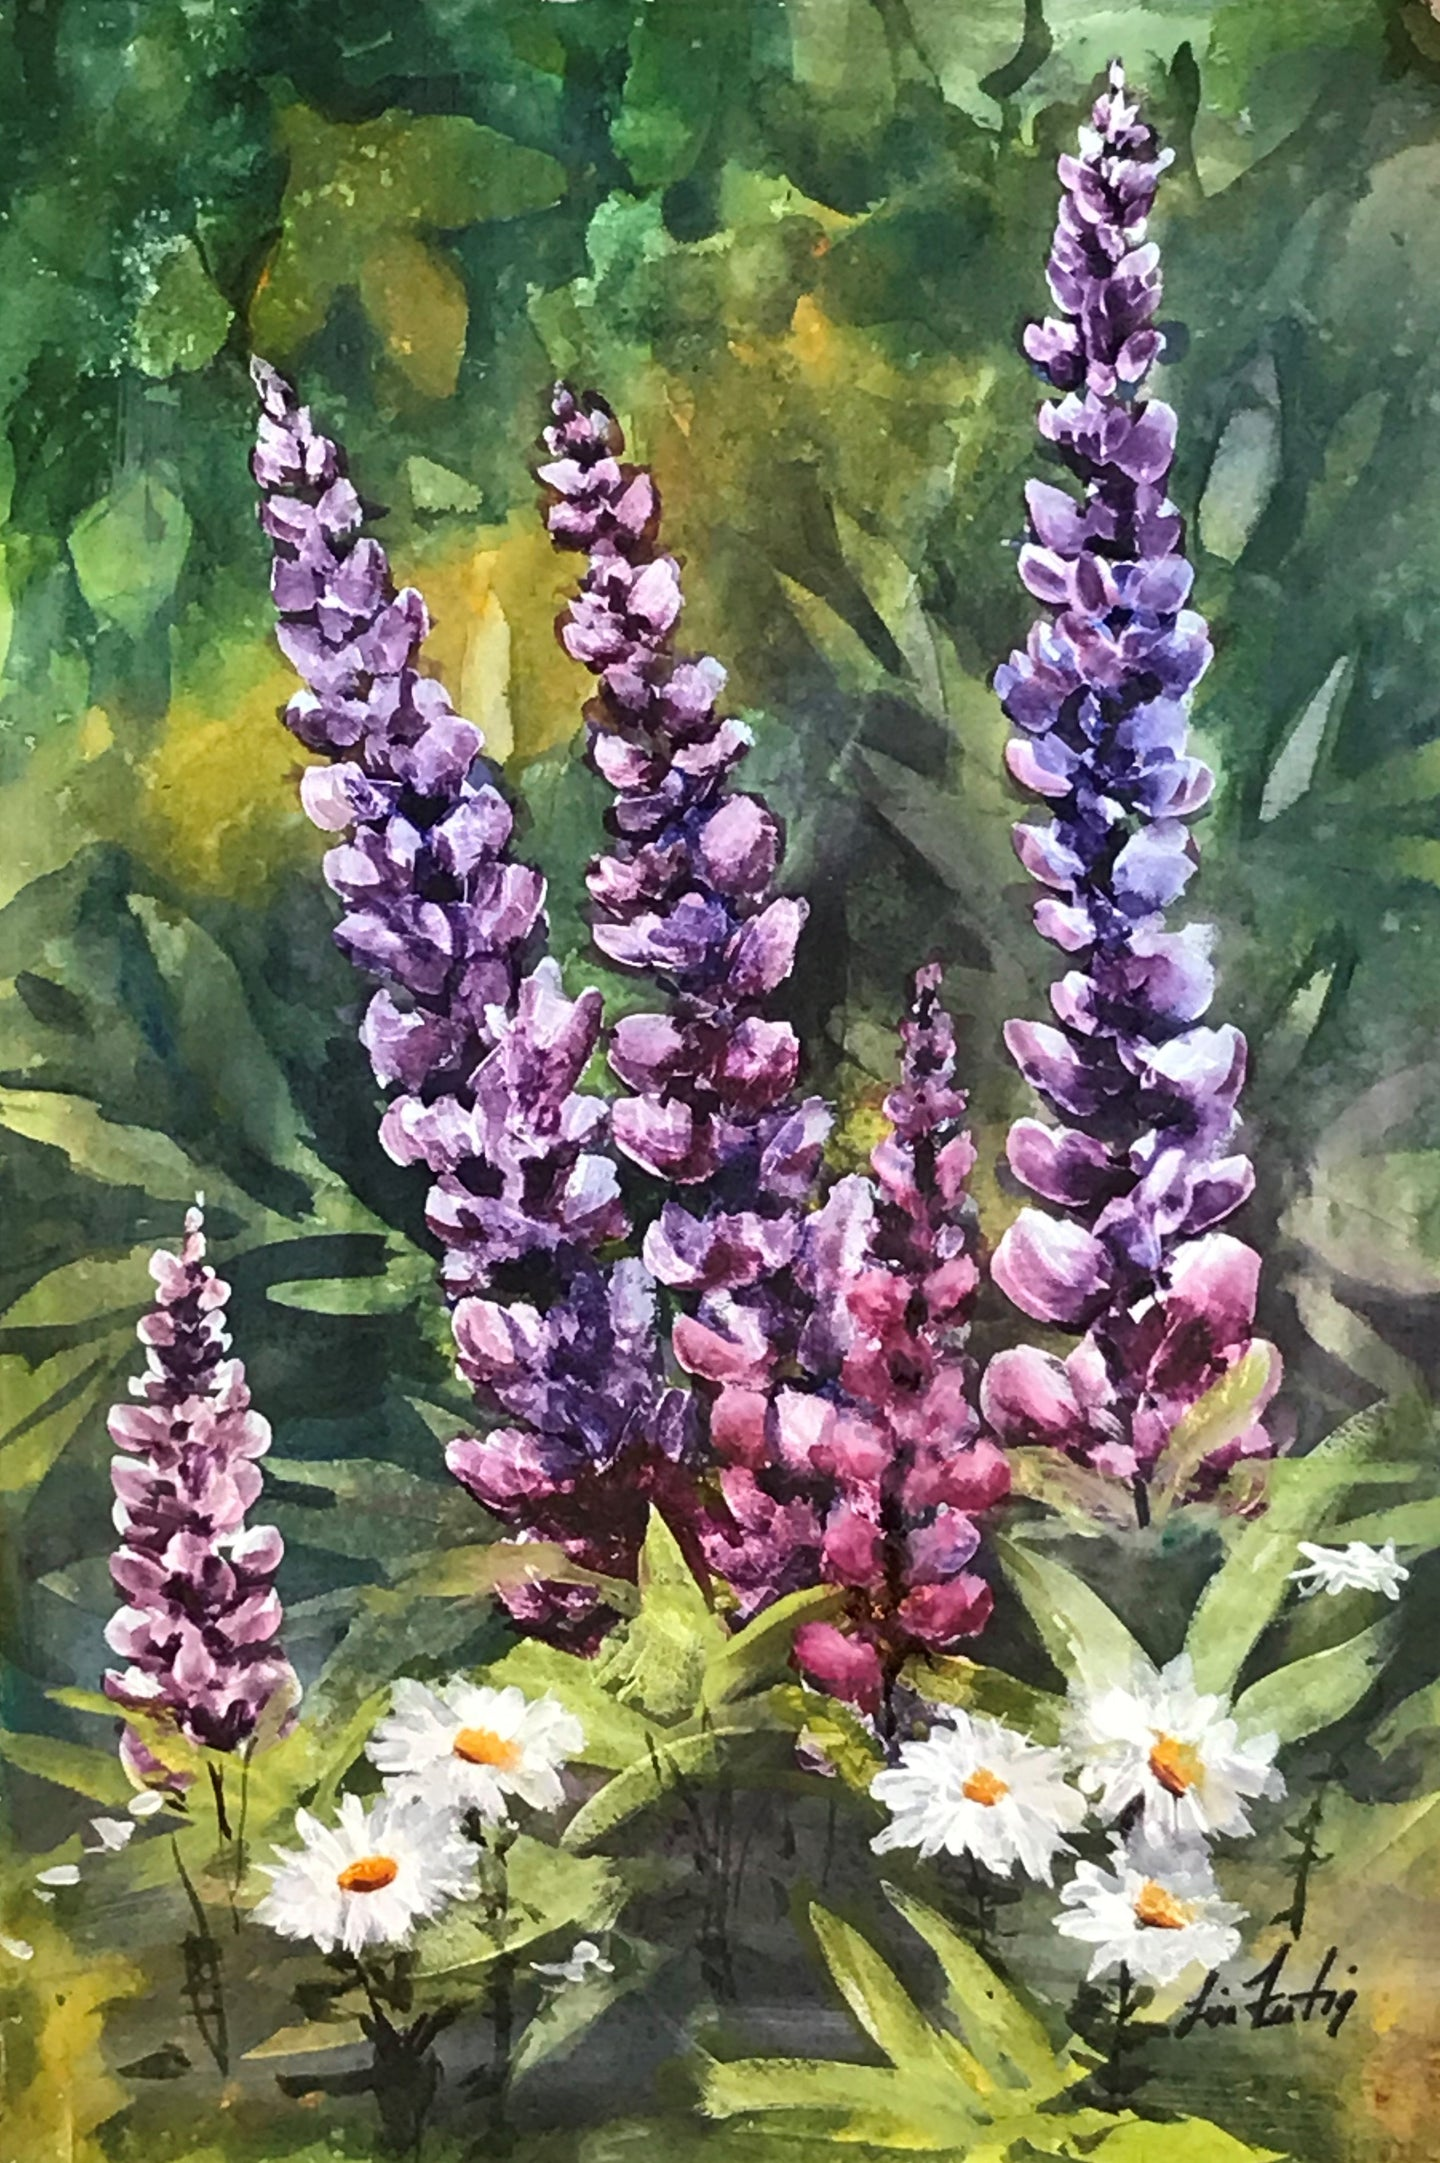 Lupine and Daisy Flowers